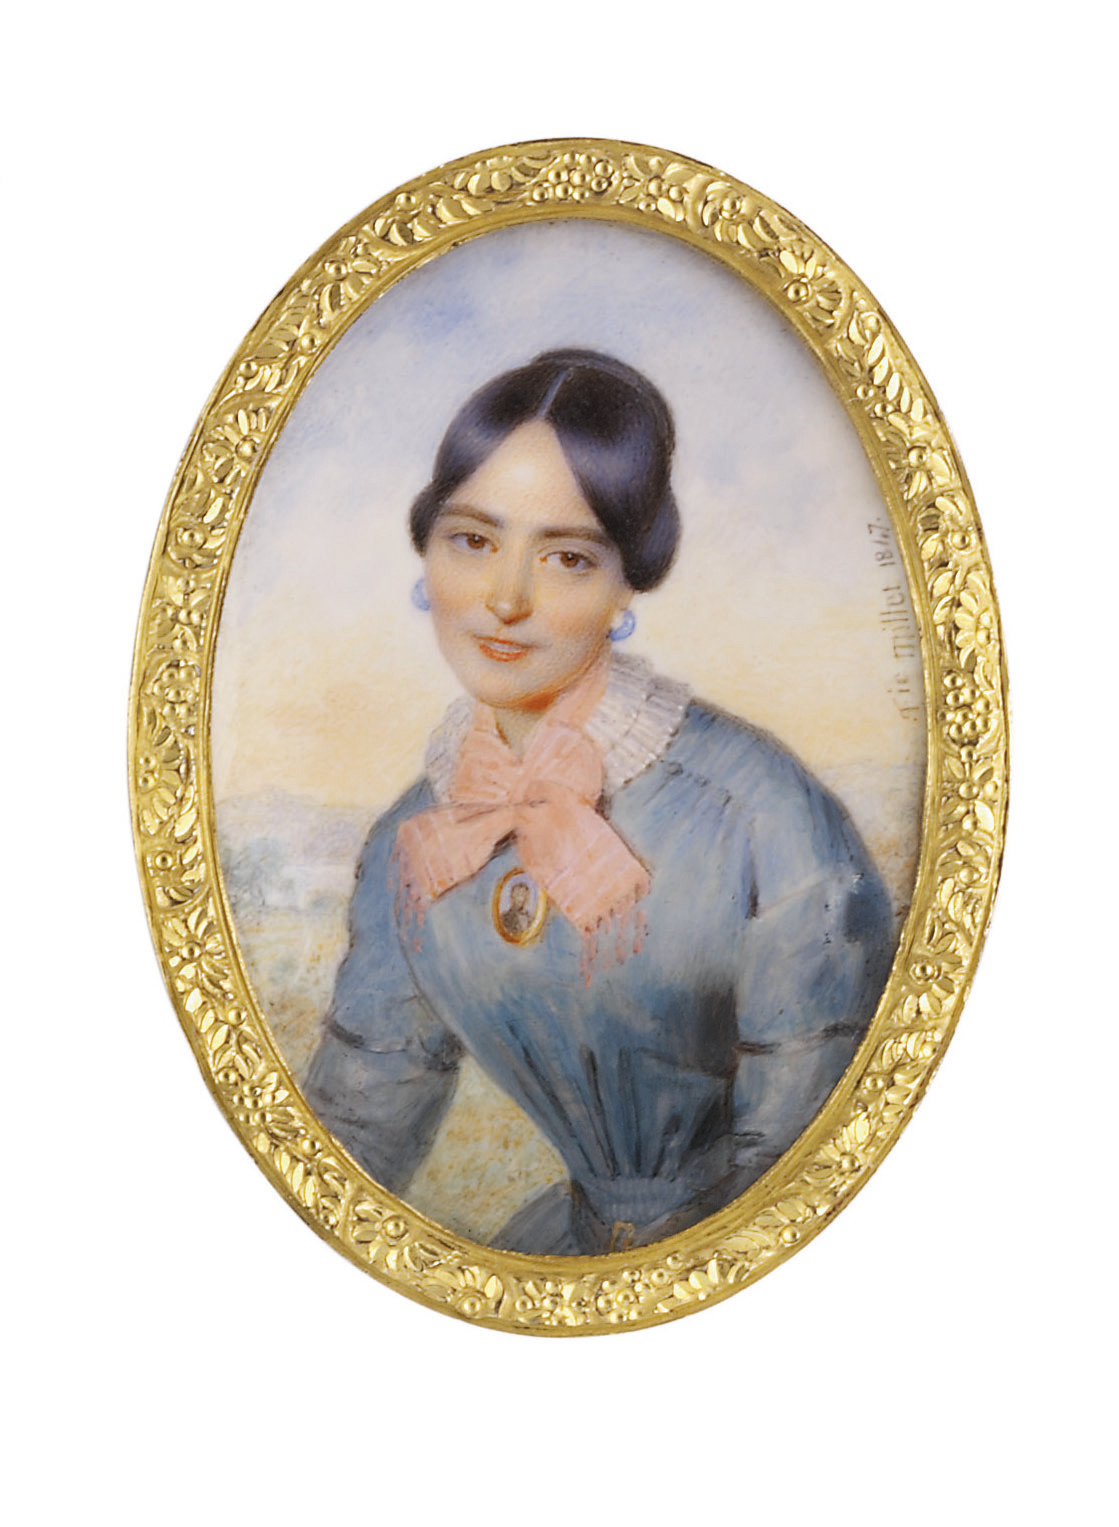 A young lady, in light blue coat, with white lace collar and pink ribbon bow, wearing a portrait miniature of a gentleman, blue hoop earrings, upswept brown hair; sky and landscape background